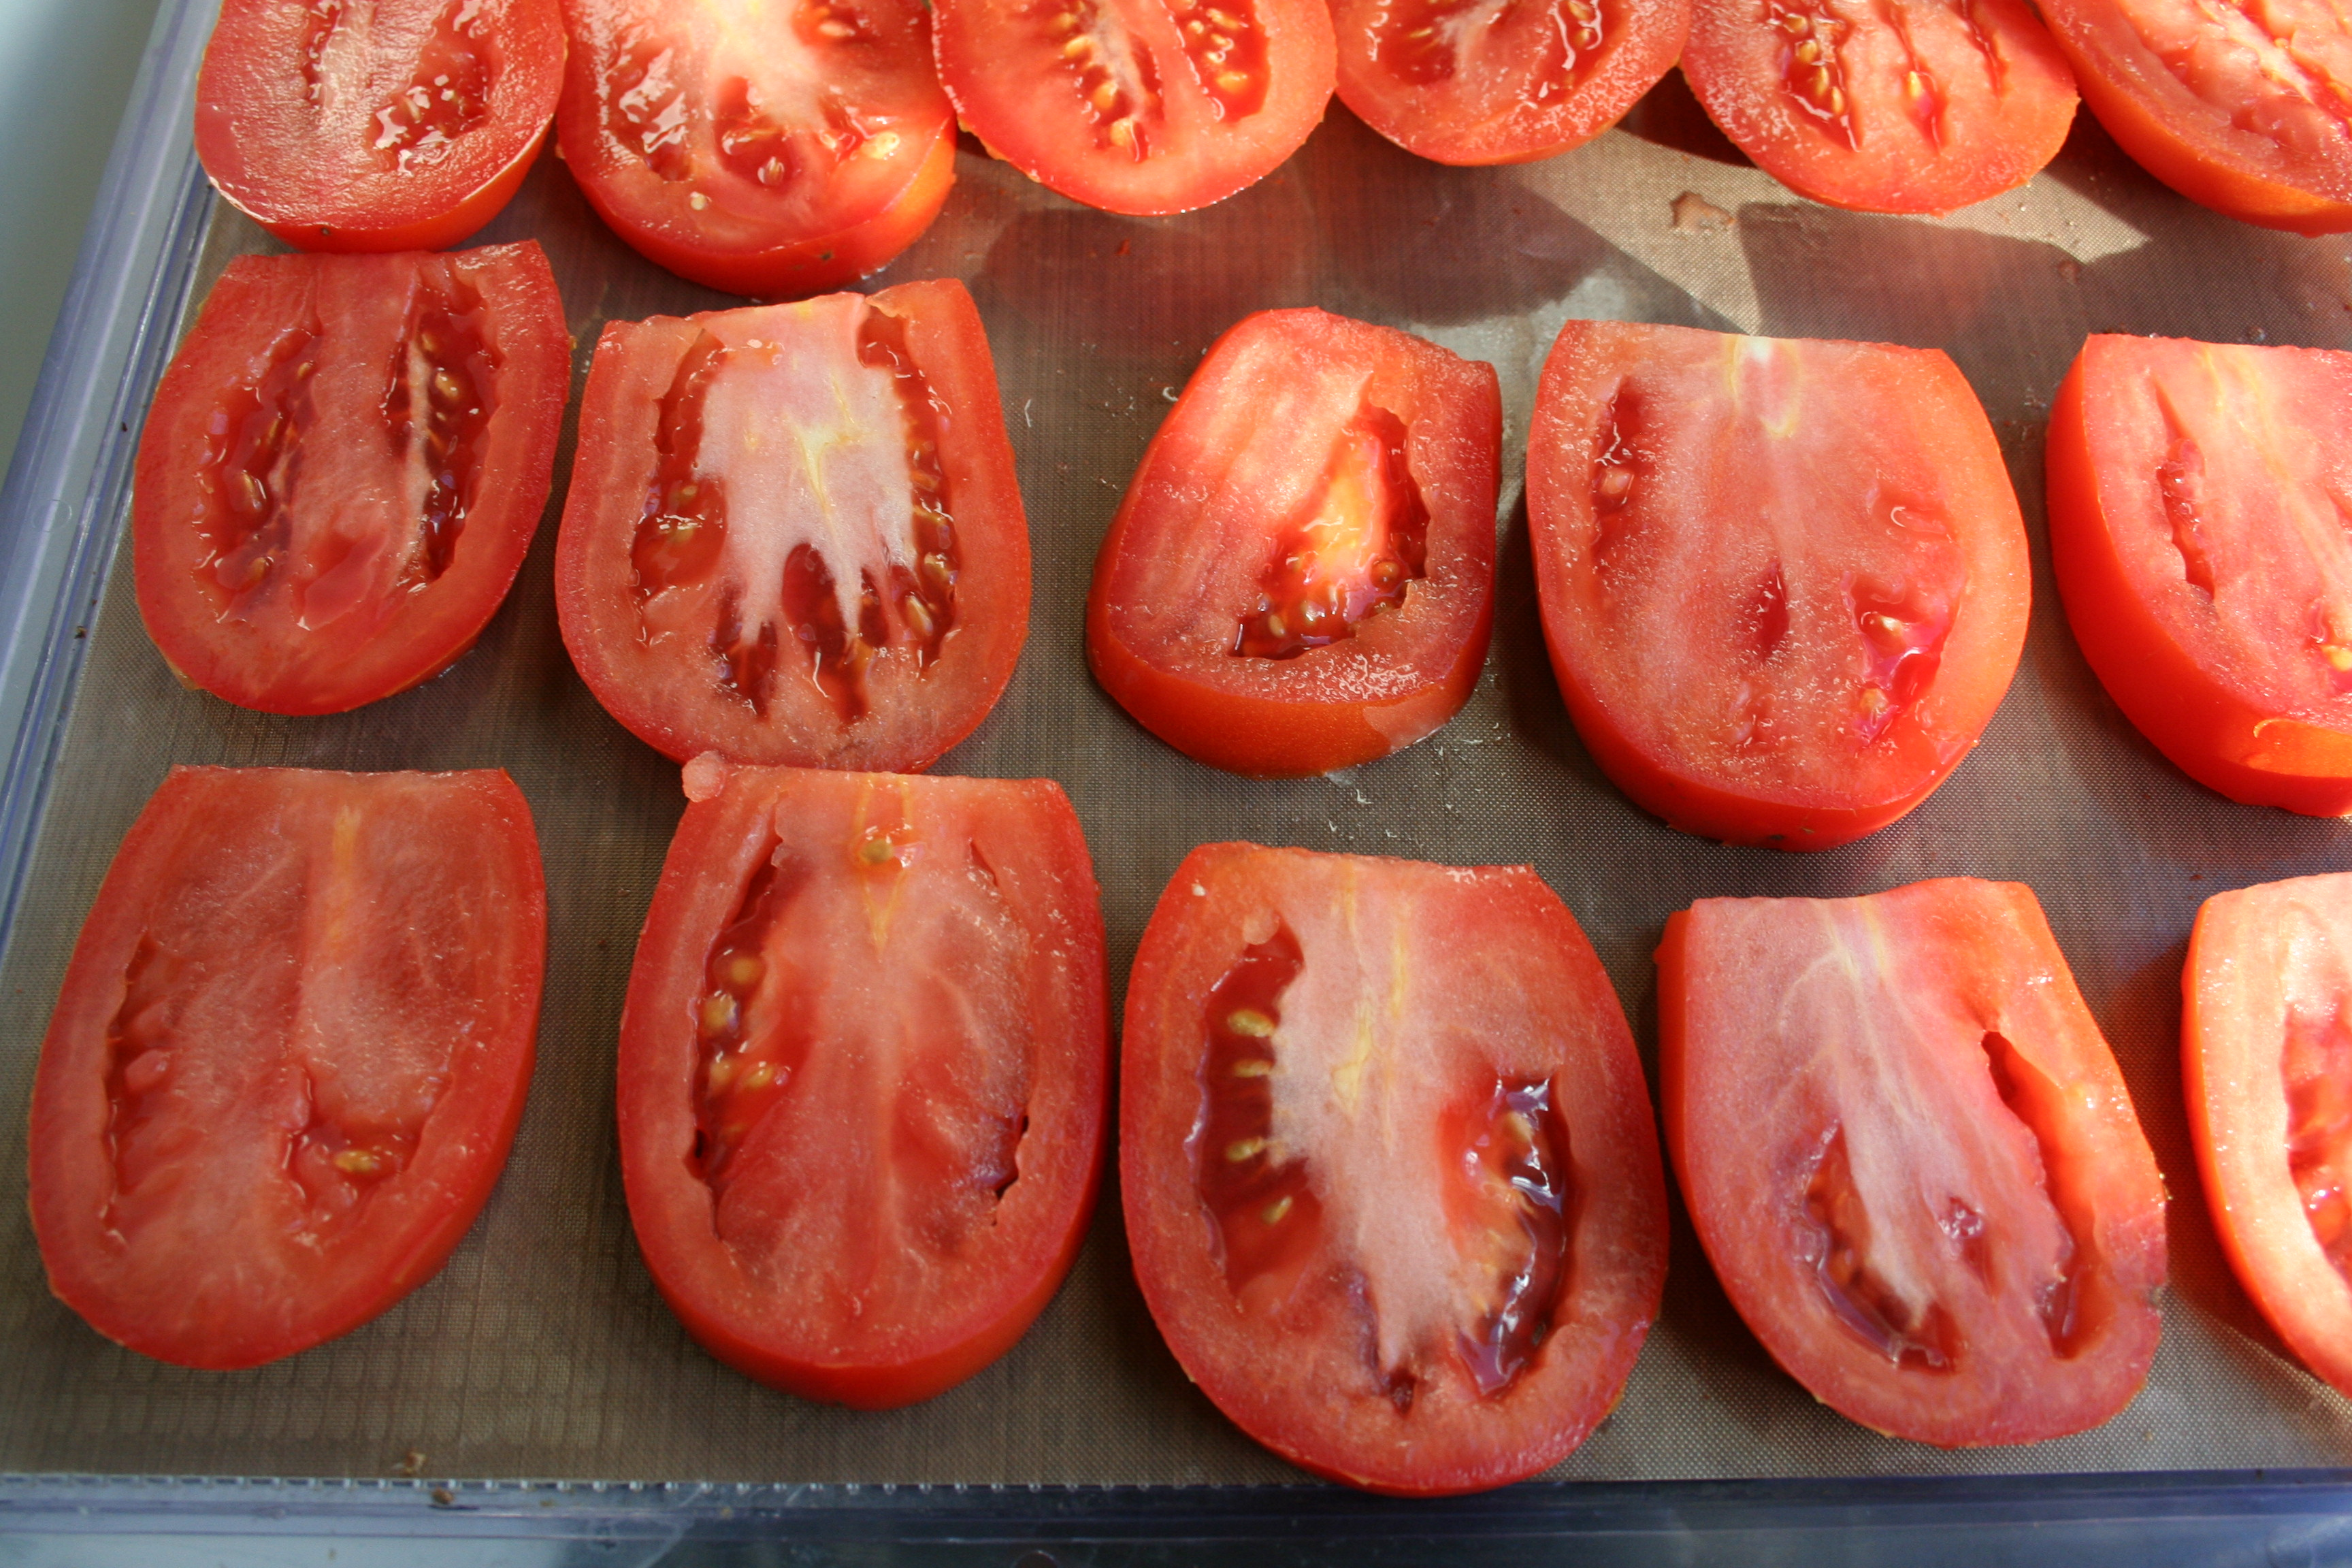 Tomatoes before being dehydrated.